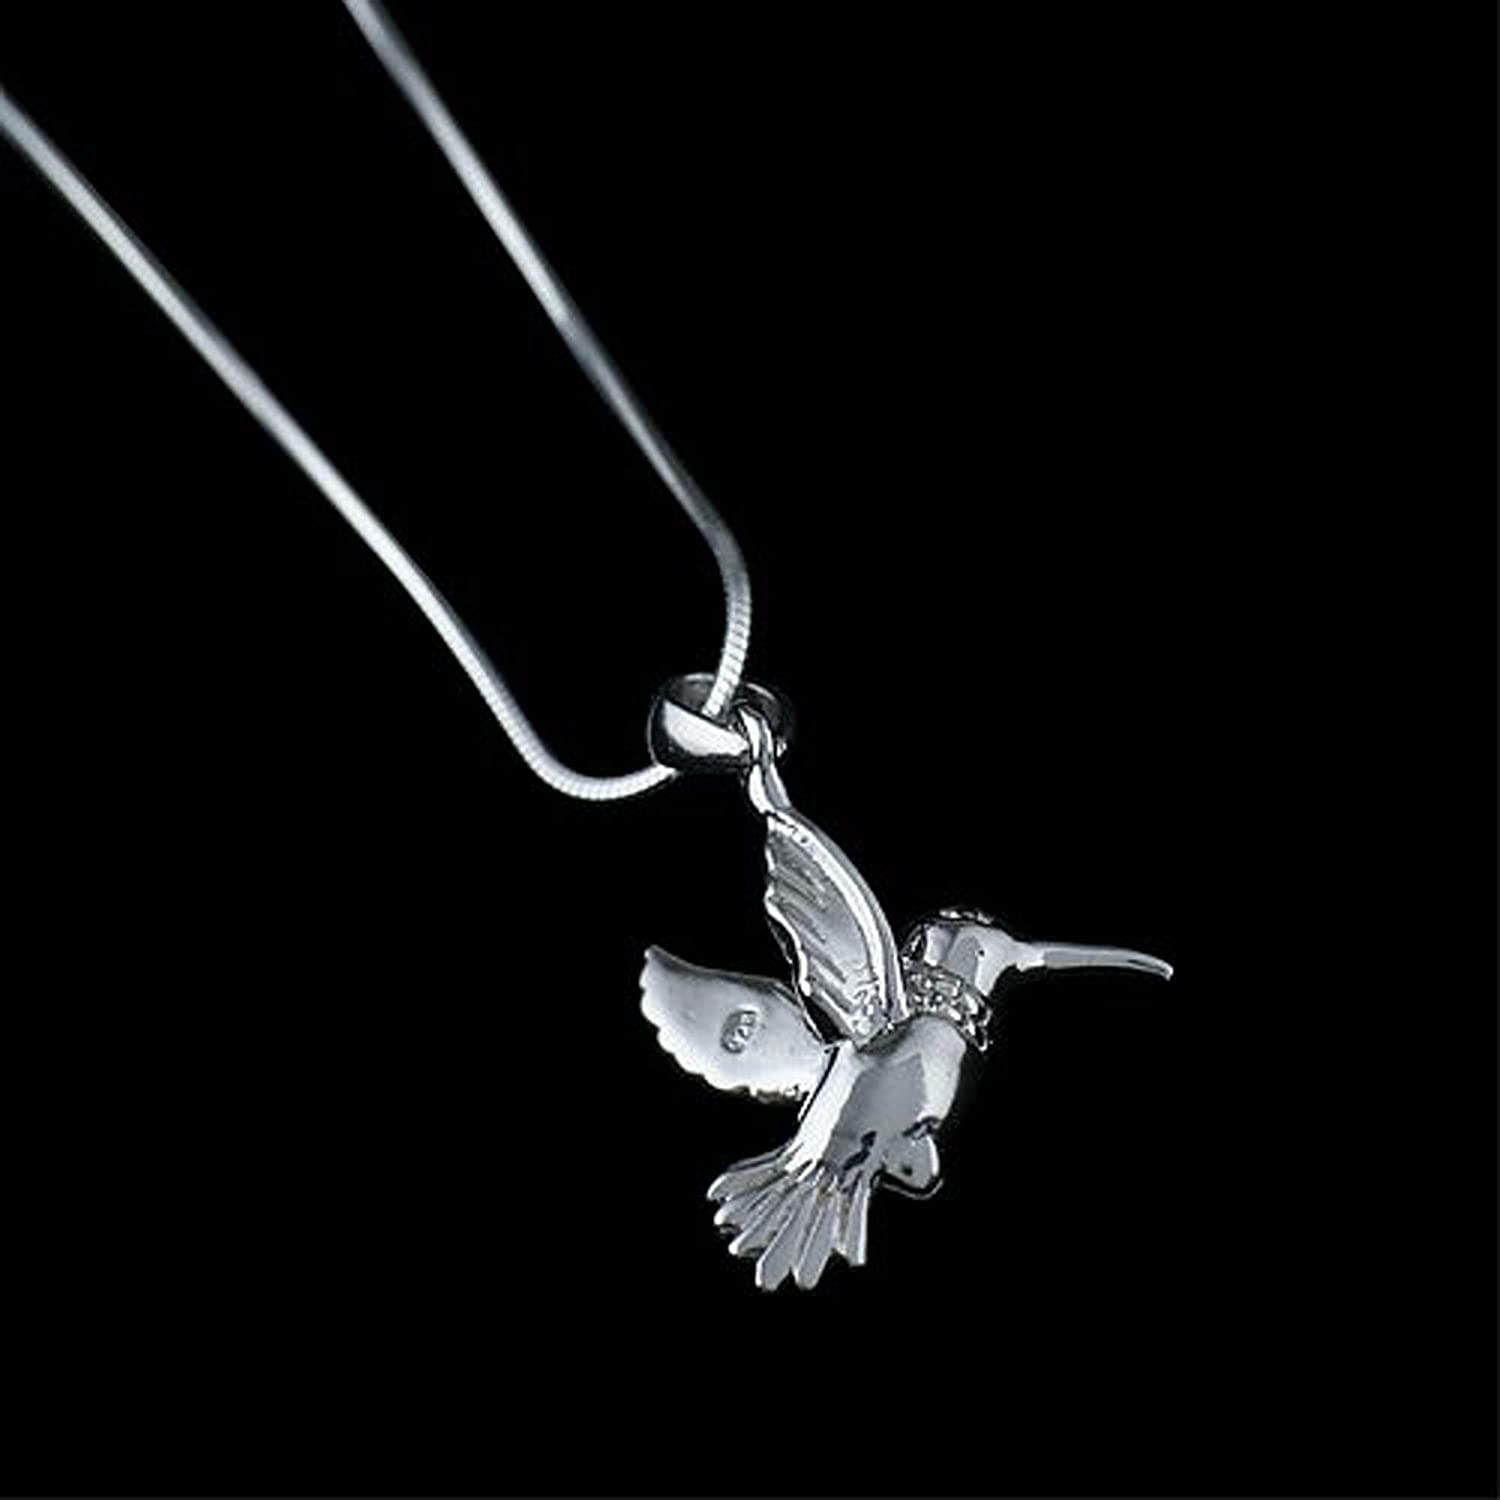 18 inch Snake Chain SHOPTOUSA 925 Sterling Silver Beautiful Hummingbird Nature Pendant Necklace